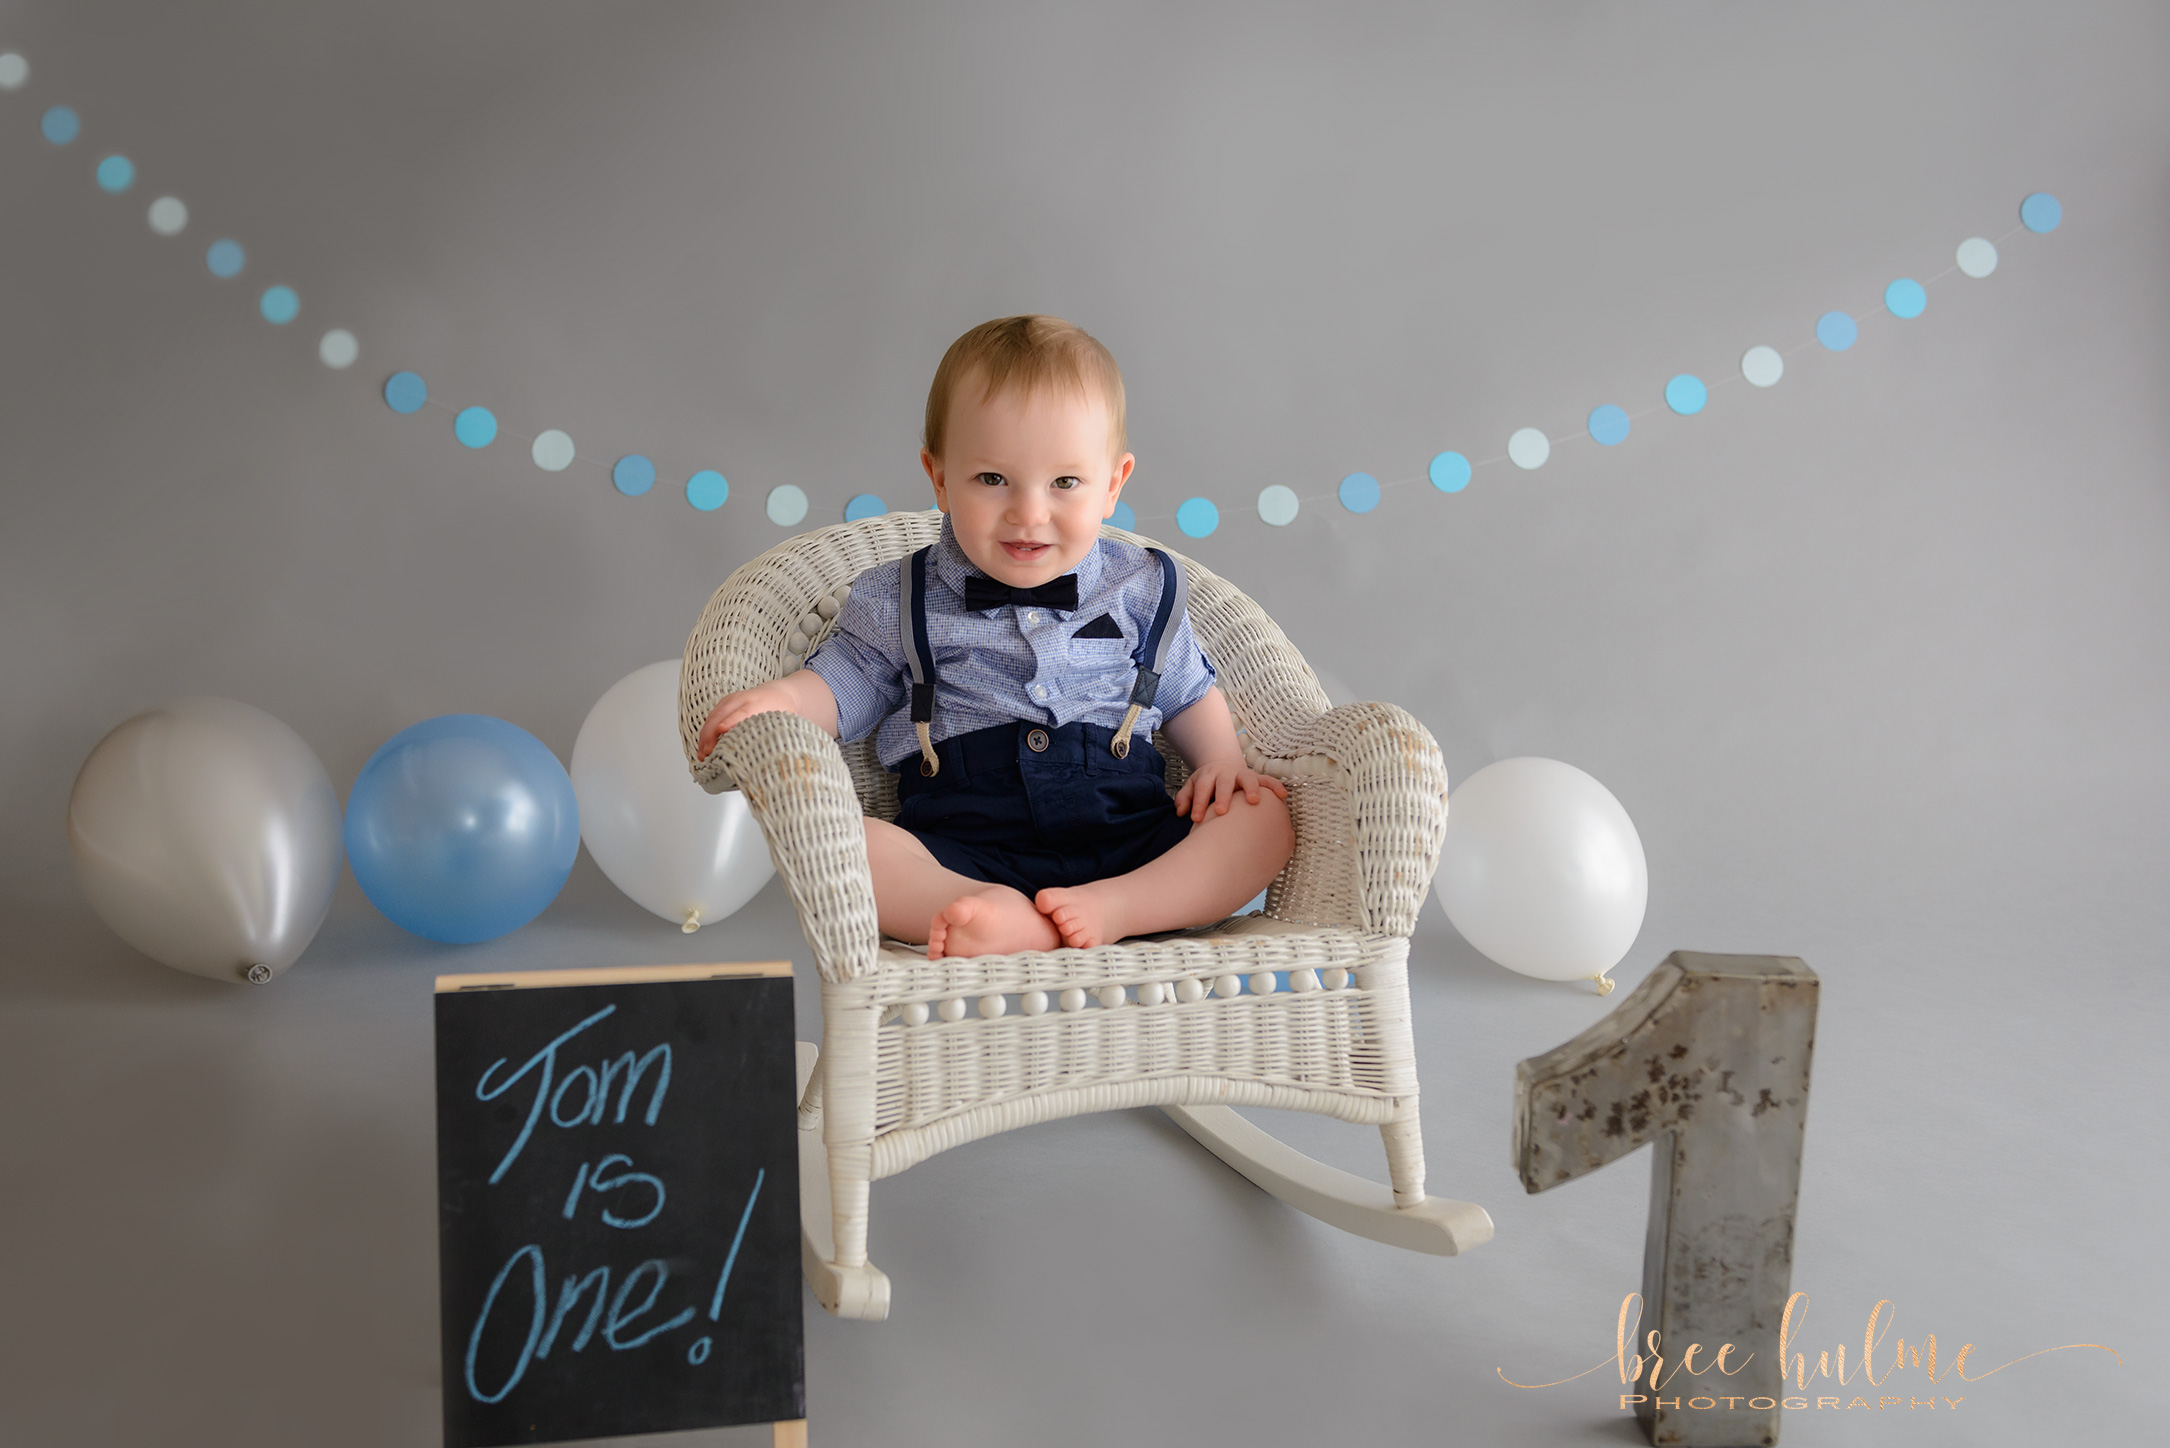 blue and grey baby boy cake smash and splash portraits for your babies 1st birthday with Bree Hulme Photography on Sydney's Northern Beaches and North Shore